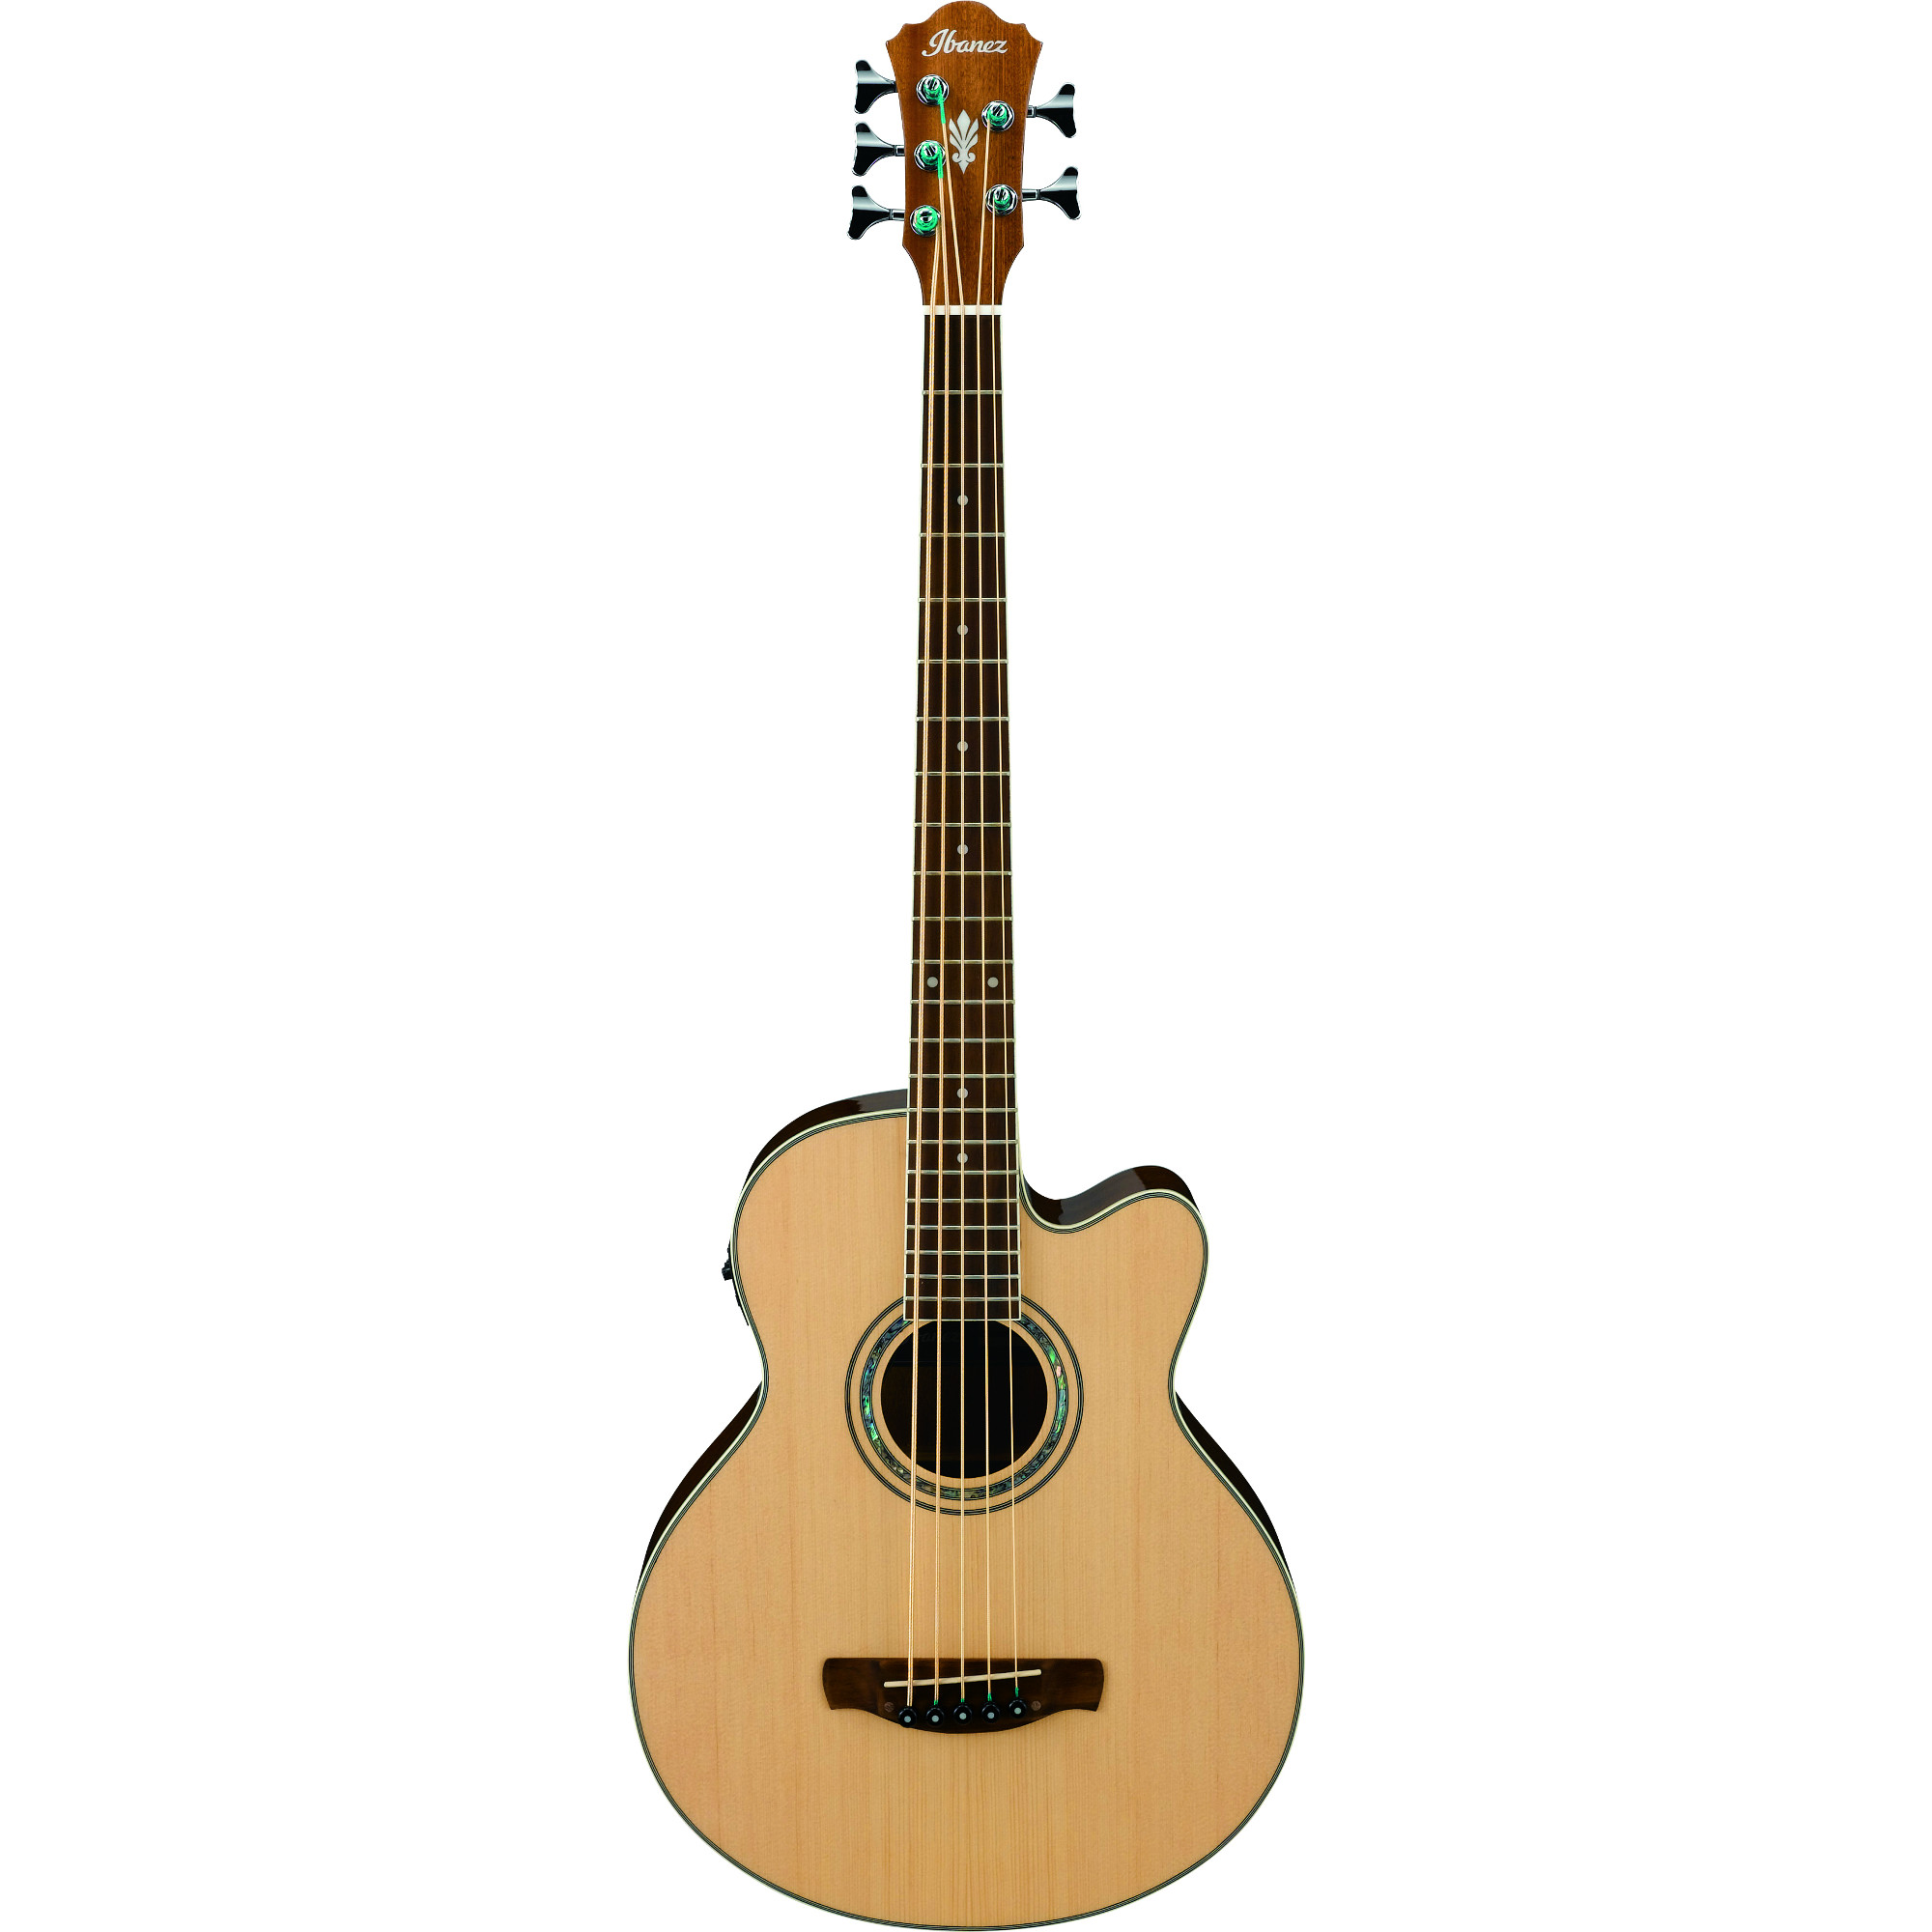 Ibanez AEB105E Natural High Gloss electro acoustic 5 string bass guitar